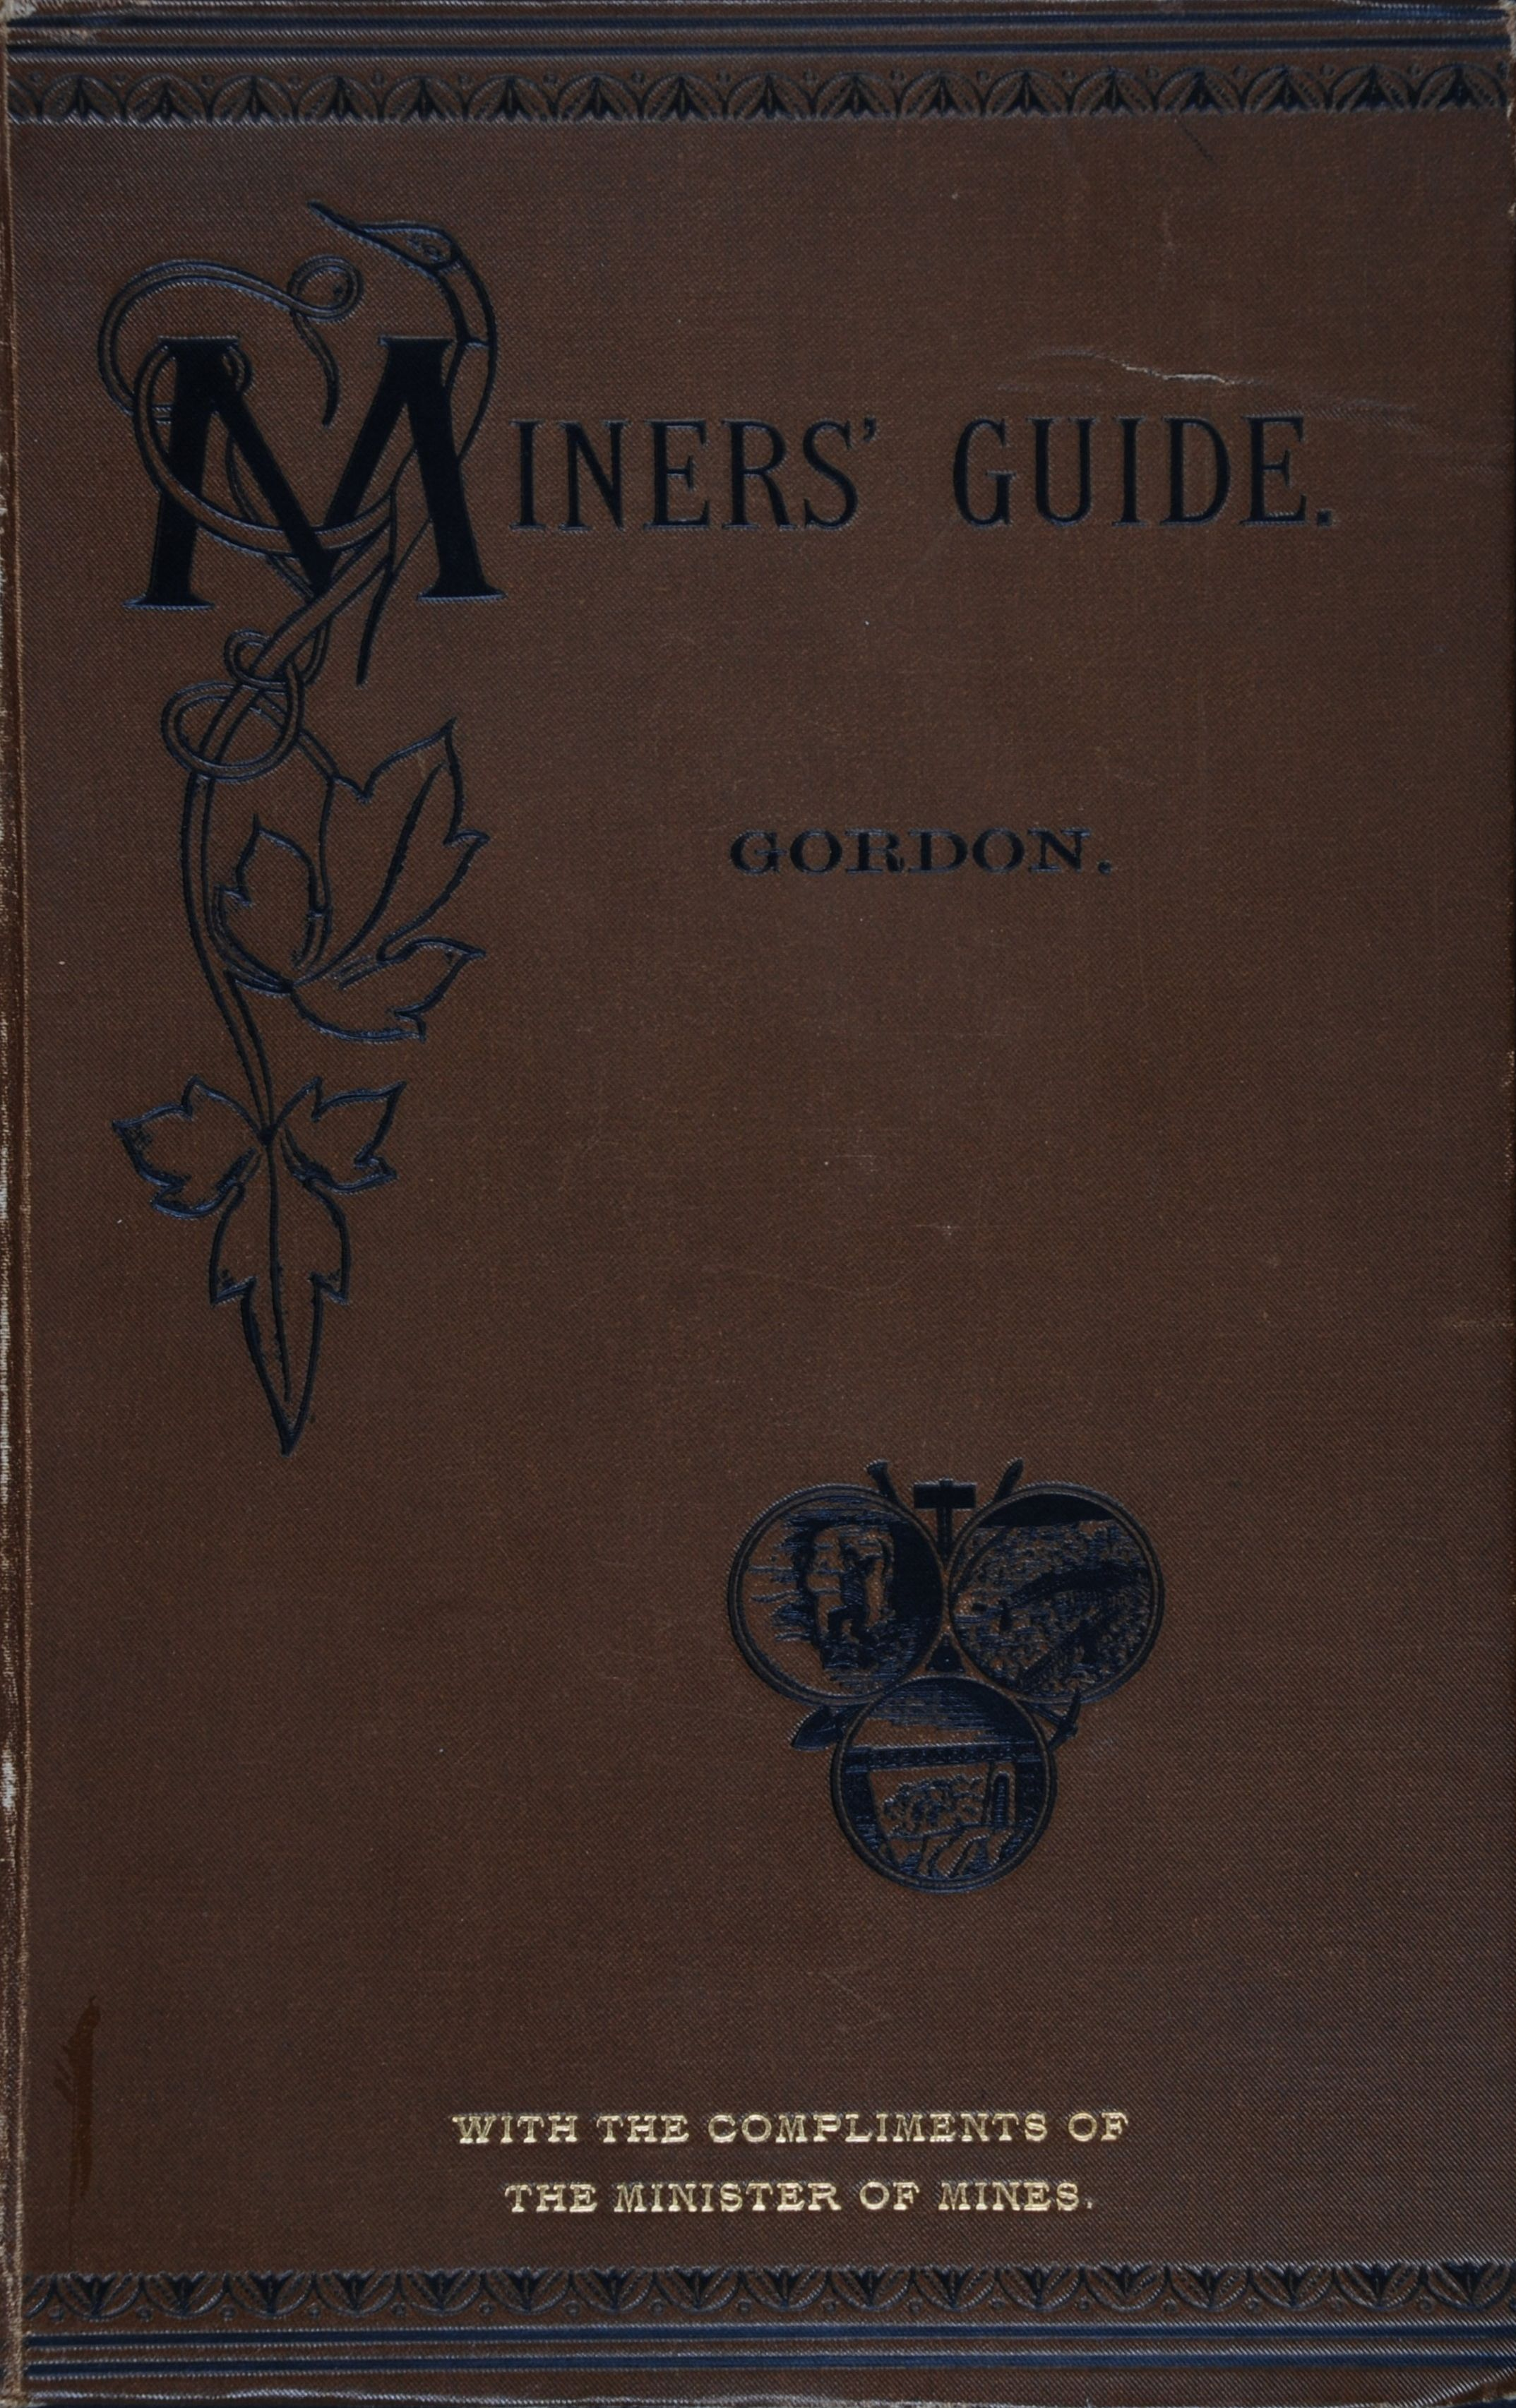 Henry A. Gordon. Mining and Engineering and Miners' guide. Wellington, N.Z.: Samuel Costall, Govt. Printer, 1894.